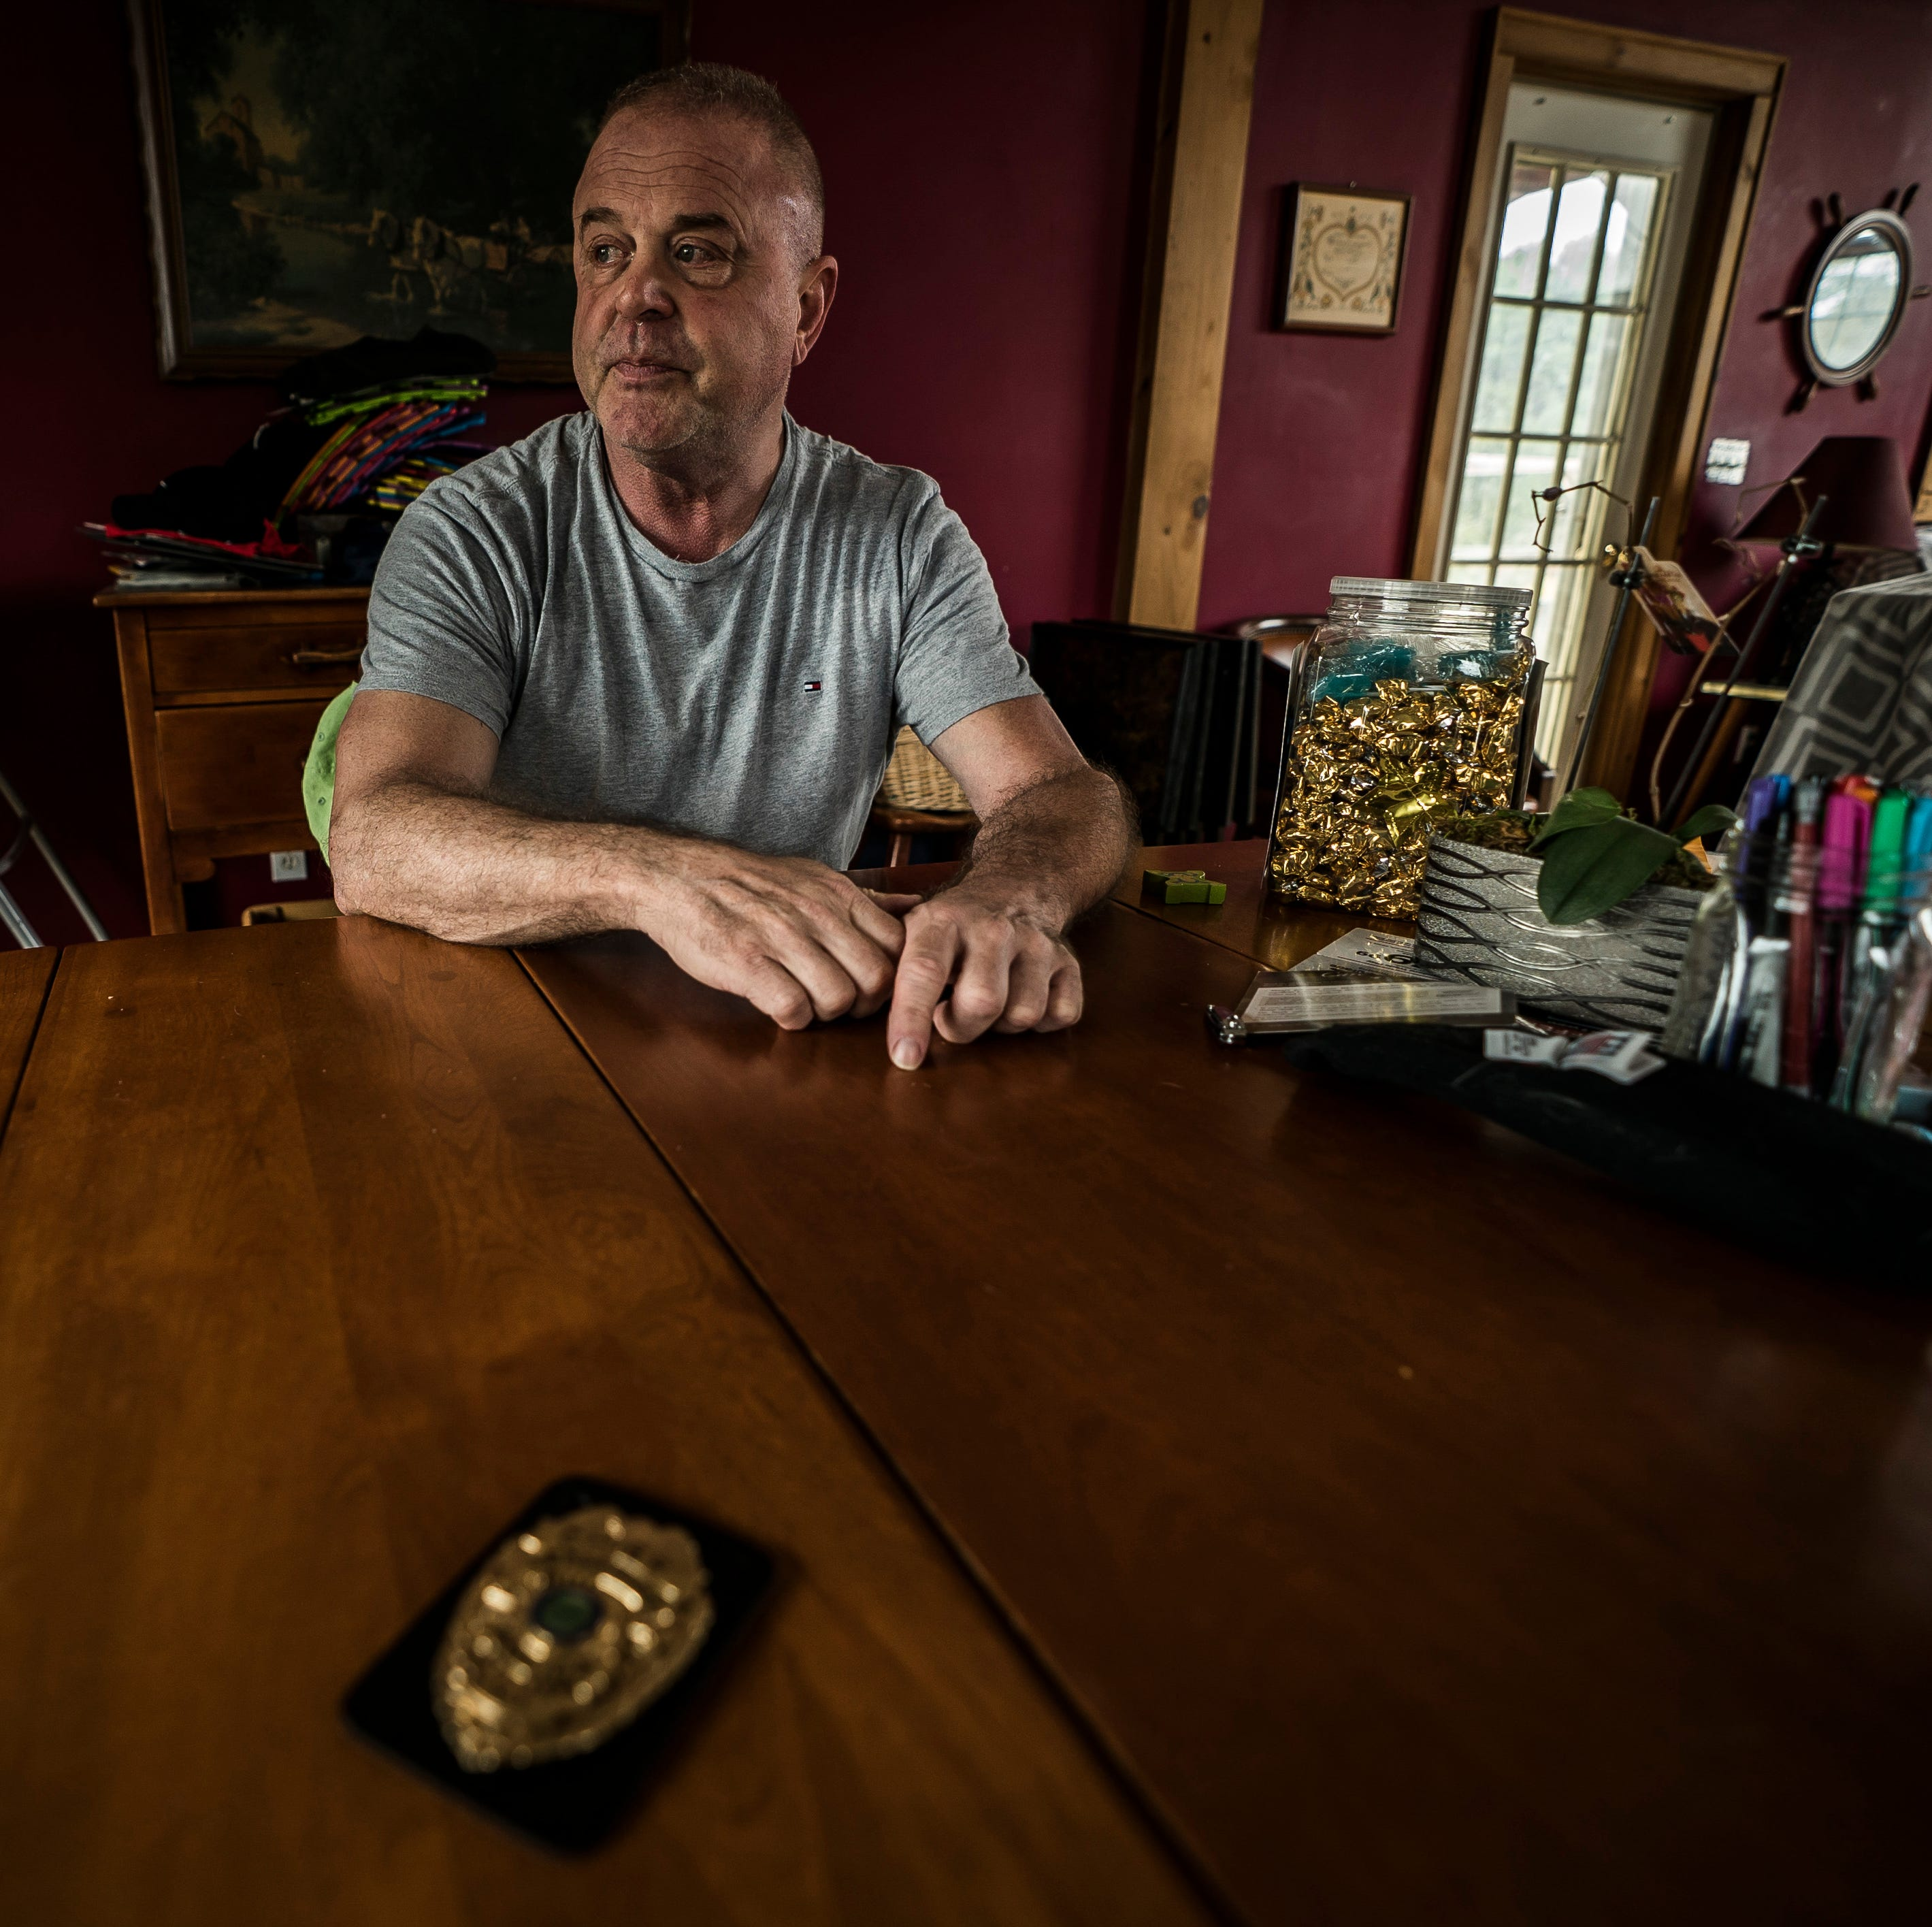 A life in recovery: From using his police badge to score to helping those in recovery